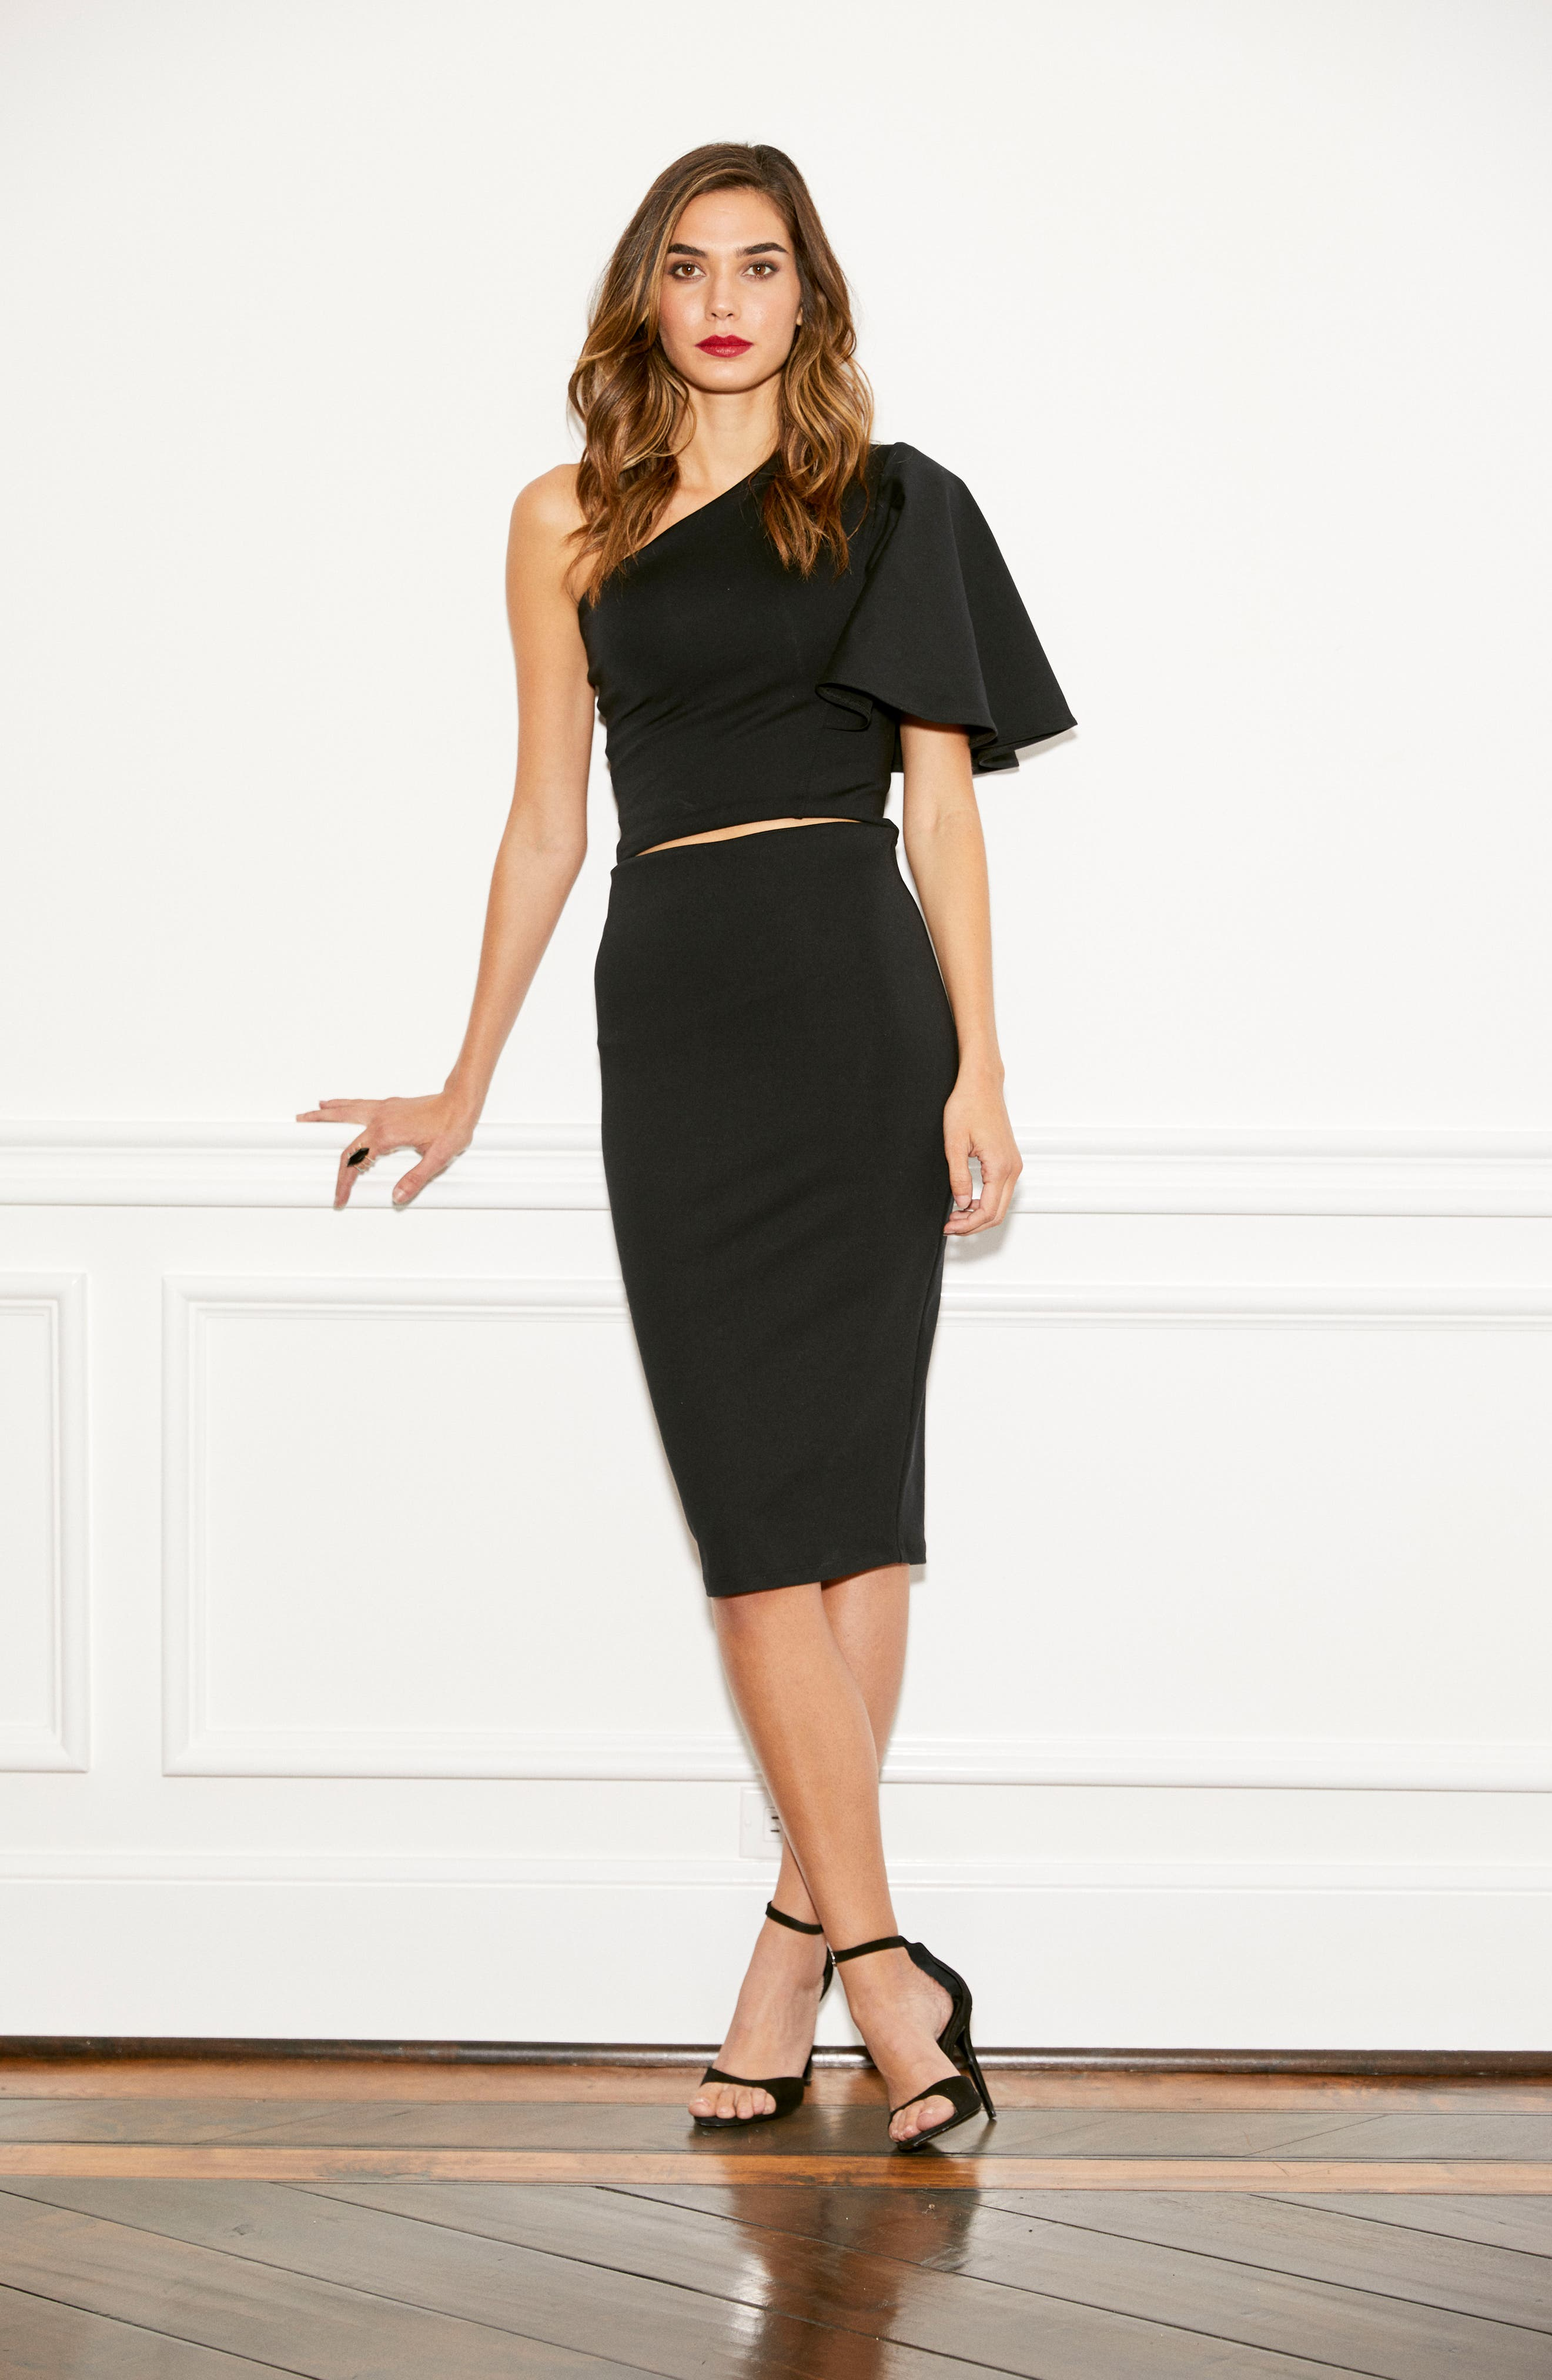 Tube High Rise Pencil Skirt,                             Alternate thumbnail 9, color,                             BLACK